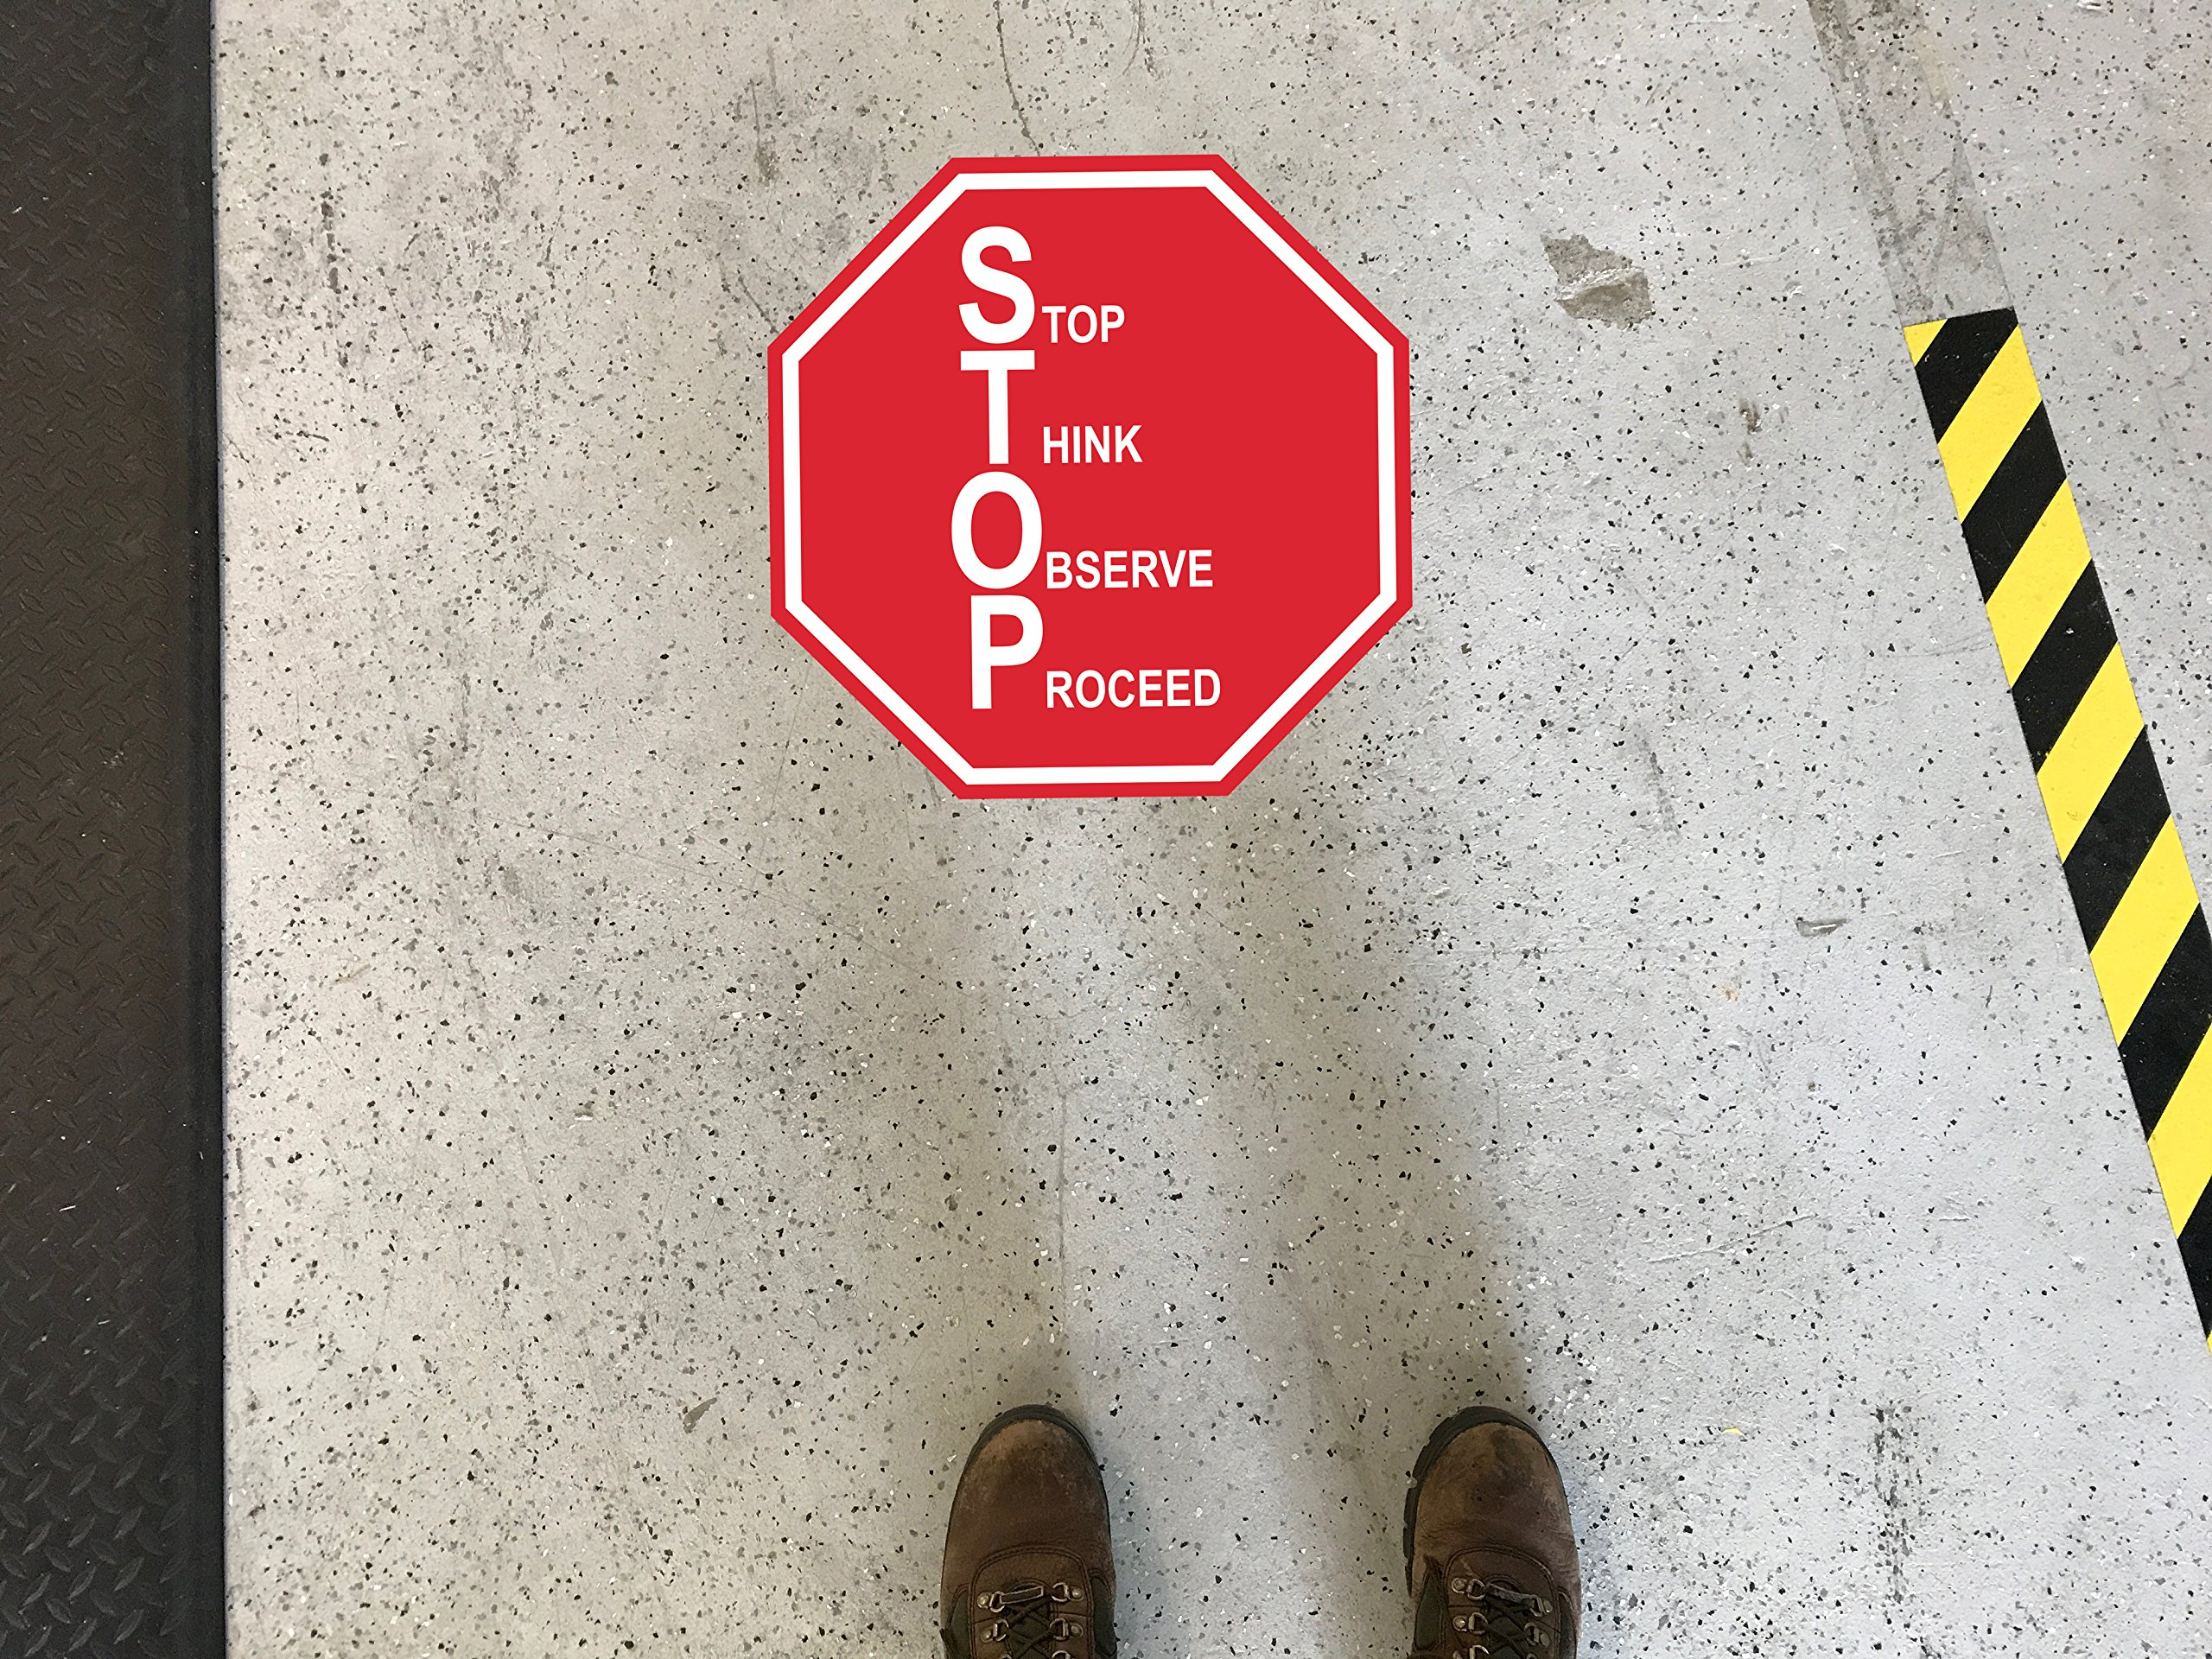 """Stop Think Observe Proceed"""" – 22in Durable Floor Sign by Graphical Warehouse Vibrant Colors - Safety and Security Signage. Red Octagon."""